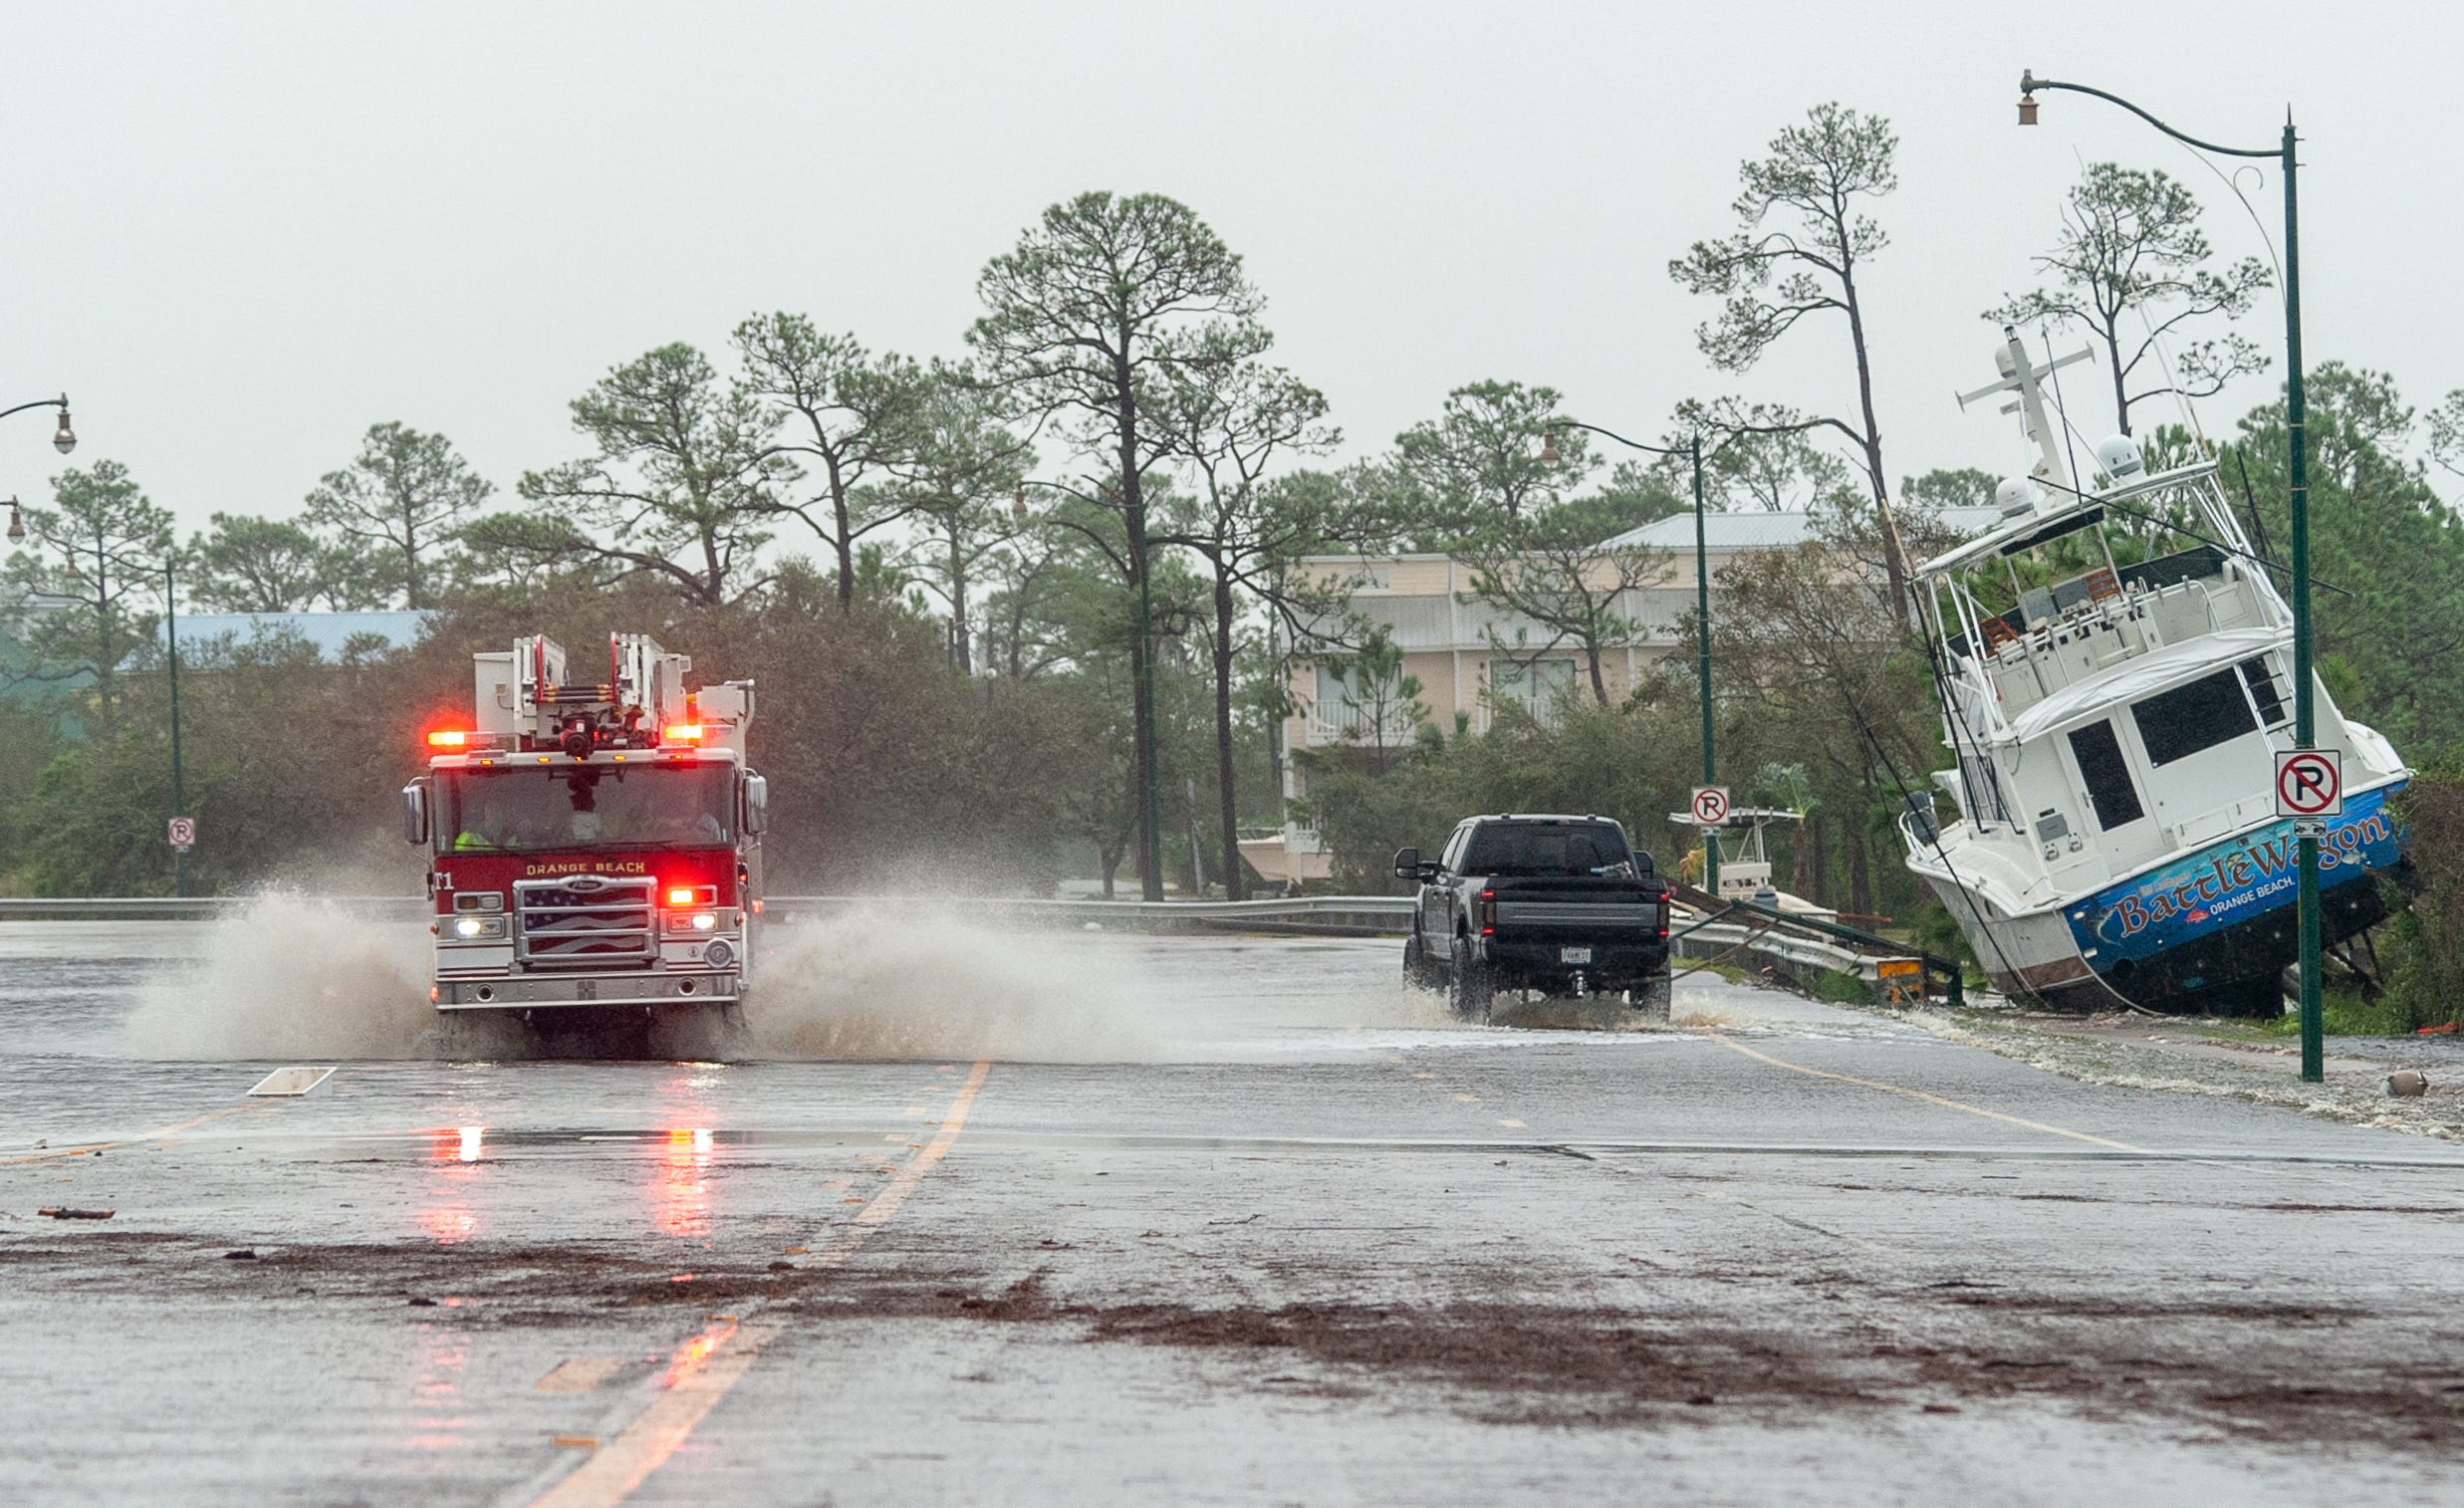 Live coverage of Sally: Far from finished, storm leaves 500,000 without power across Deep South; flooding, rains roll north